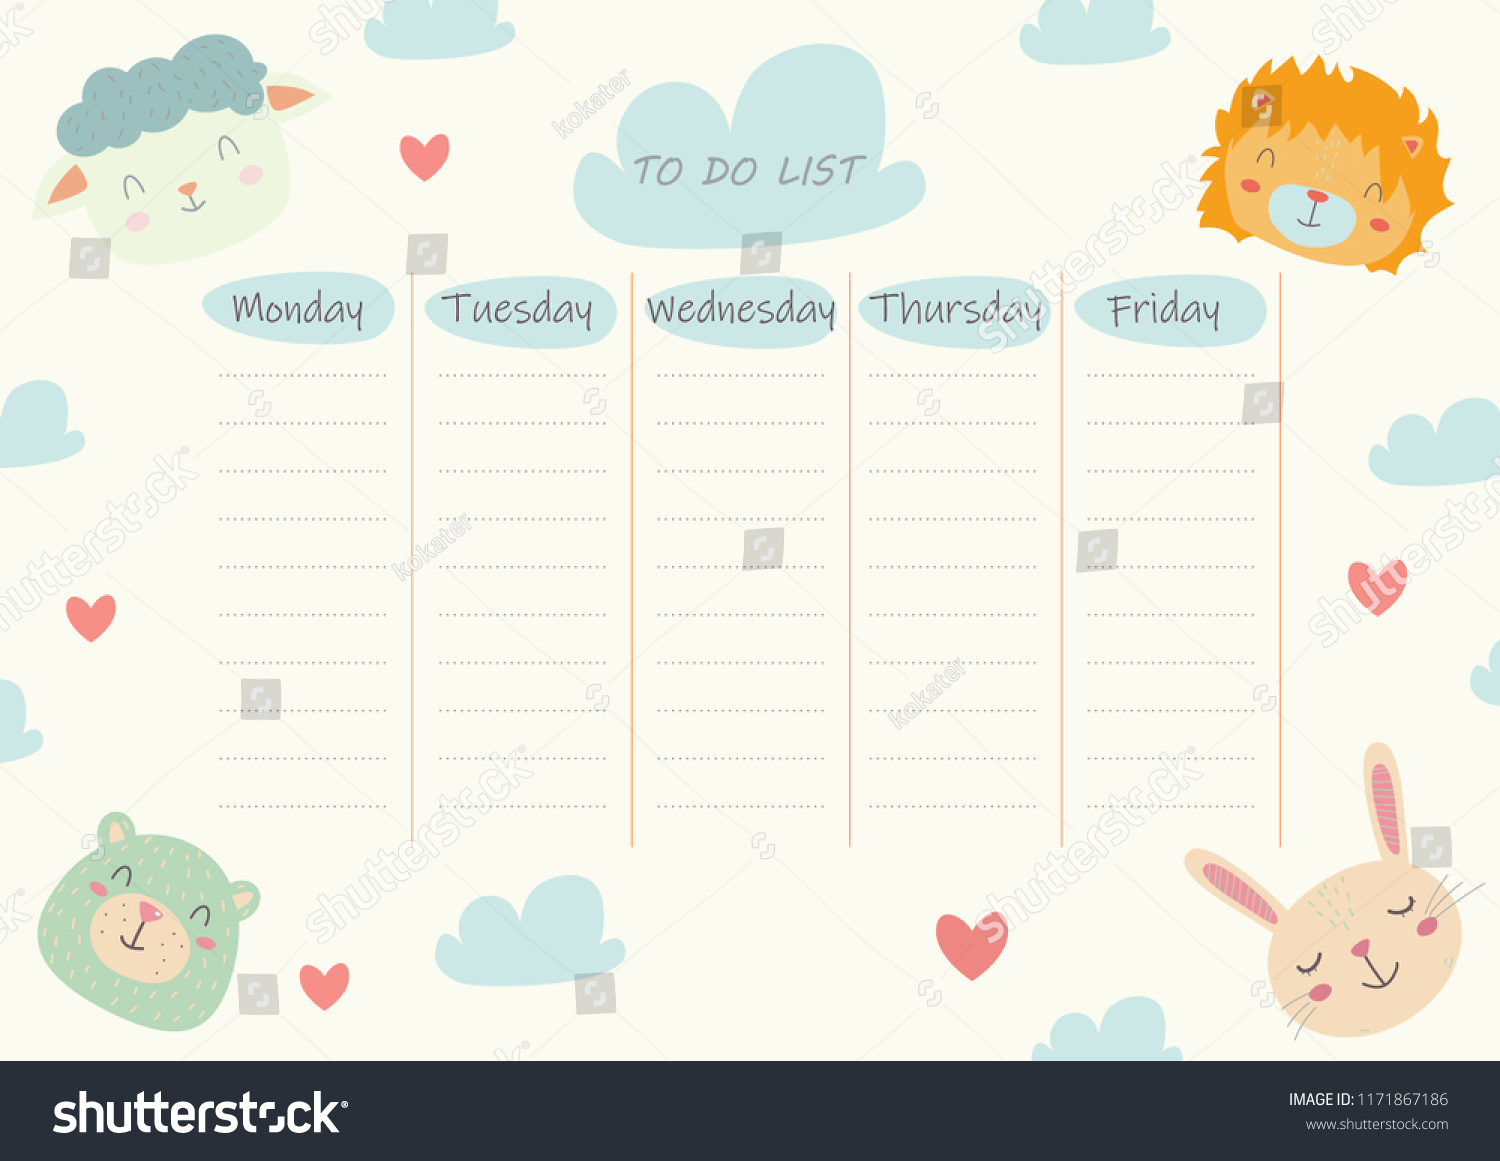 do list sheet kids cute funny stock vector royalty free 1171867186